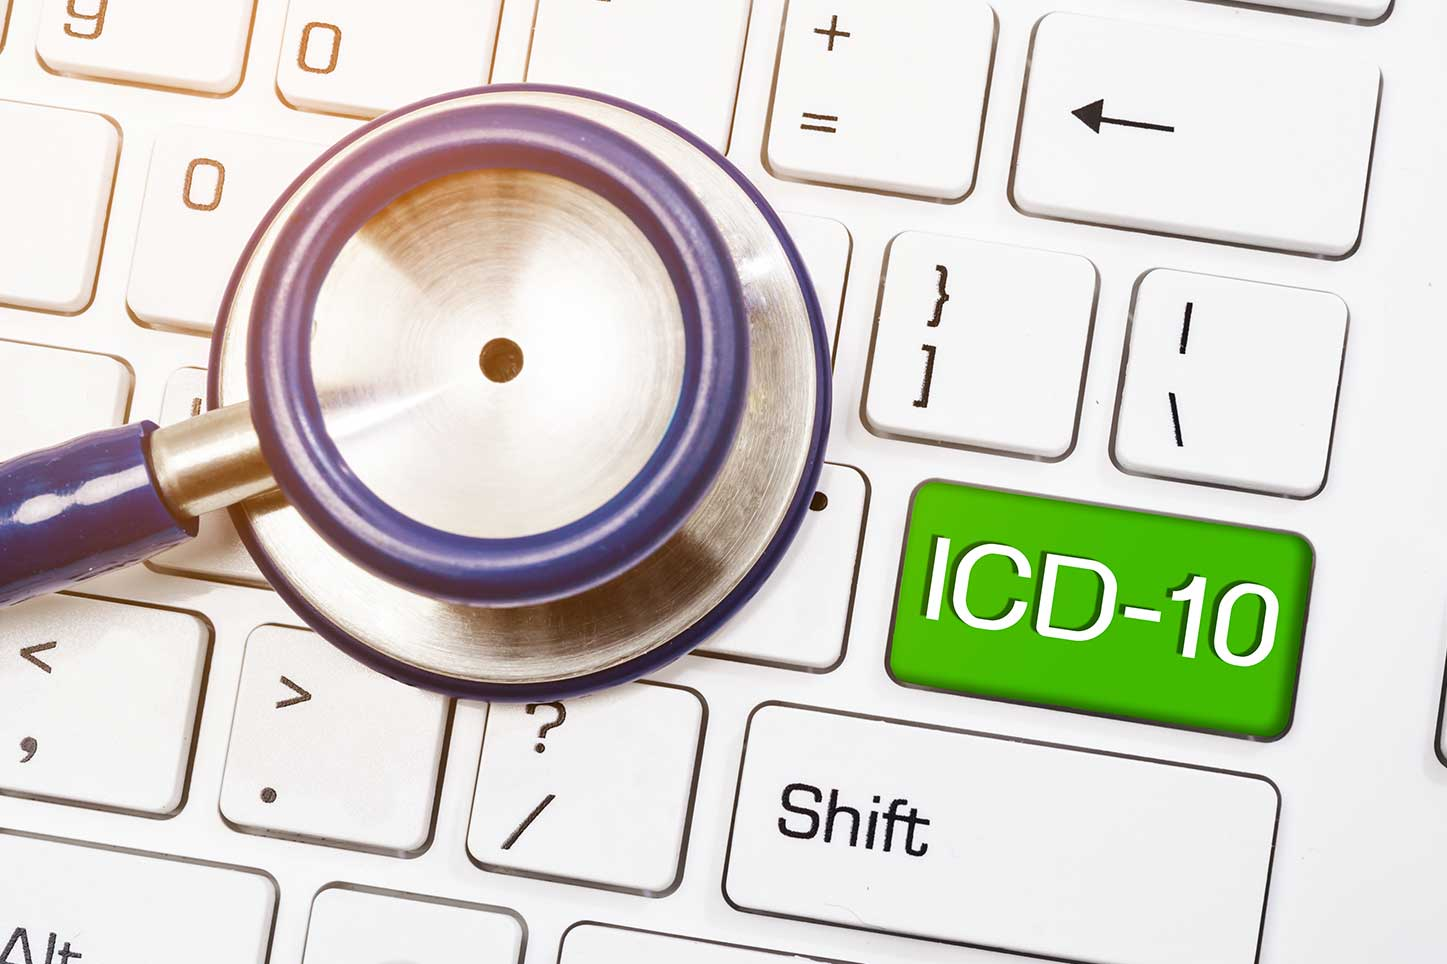 ICD-10 Codes Help Deliver Quality Healthcare